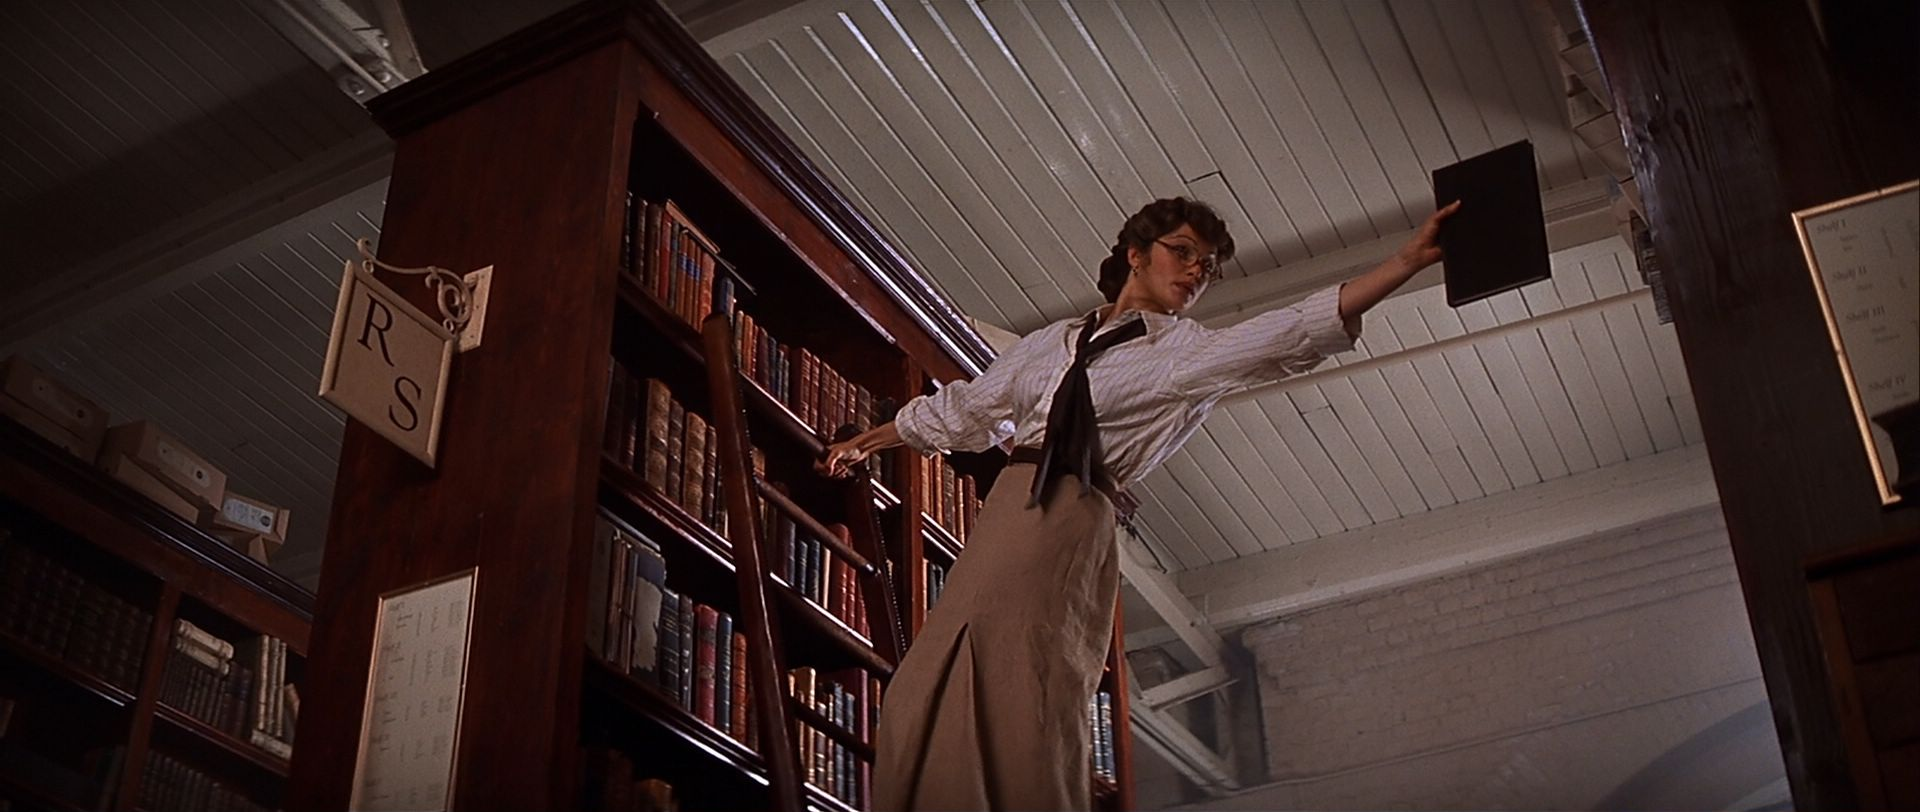 Evie from the Mummy in the Library Scene